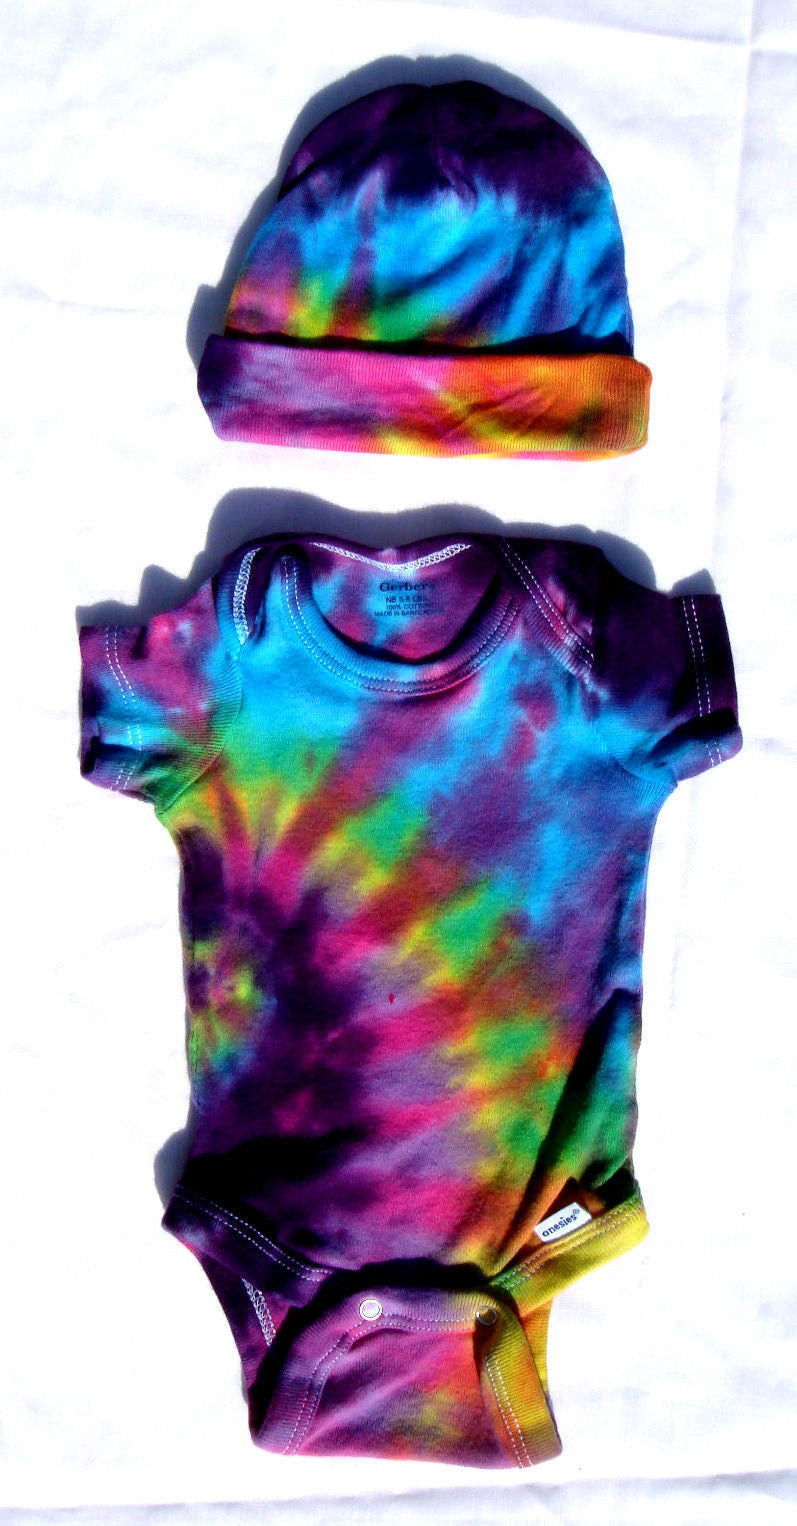 cf8c2850eb5 Short Sleeve Tie Dye Infant Baby Onesie With Matching Cap - Pink Rainb –  Blue Mountain Tie Dye